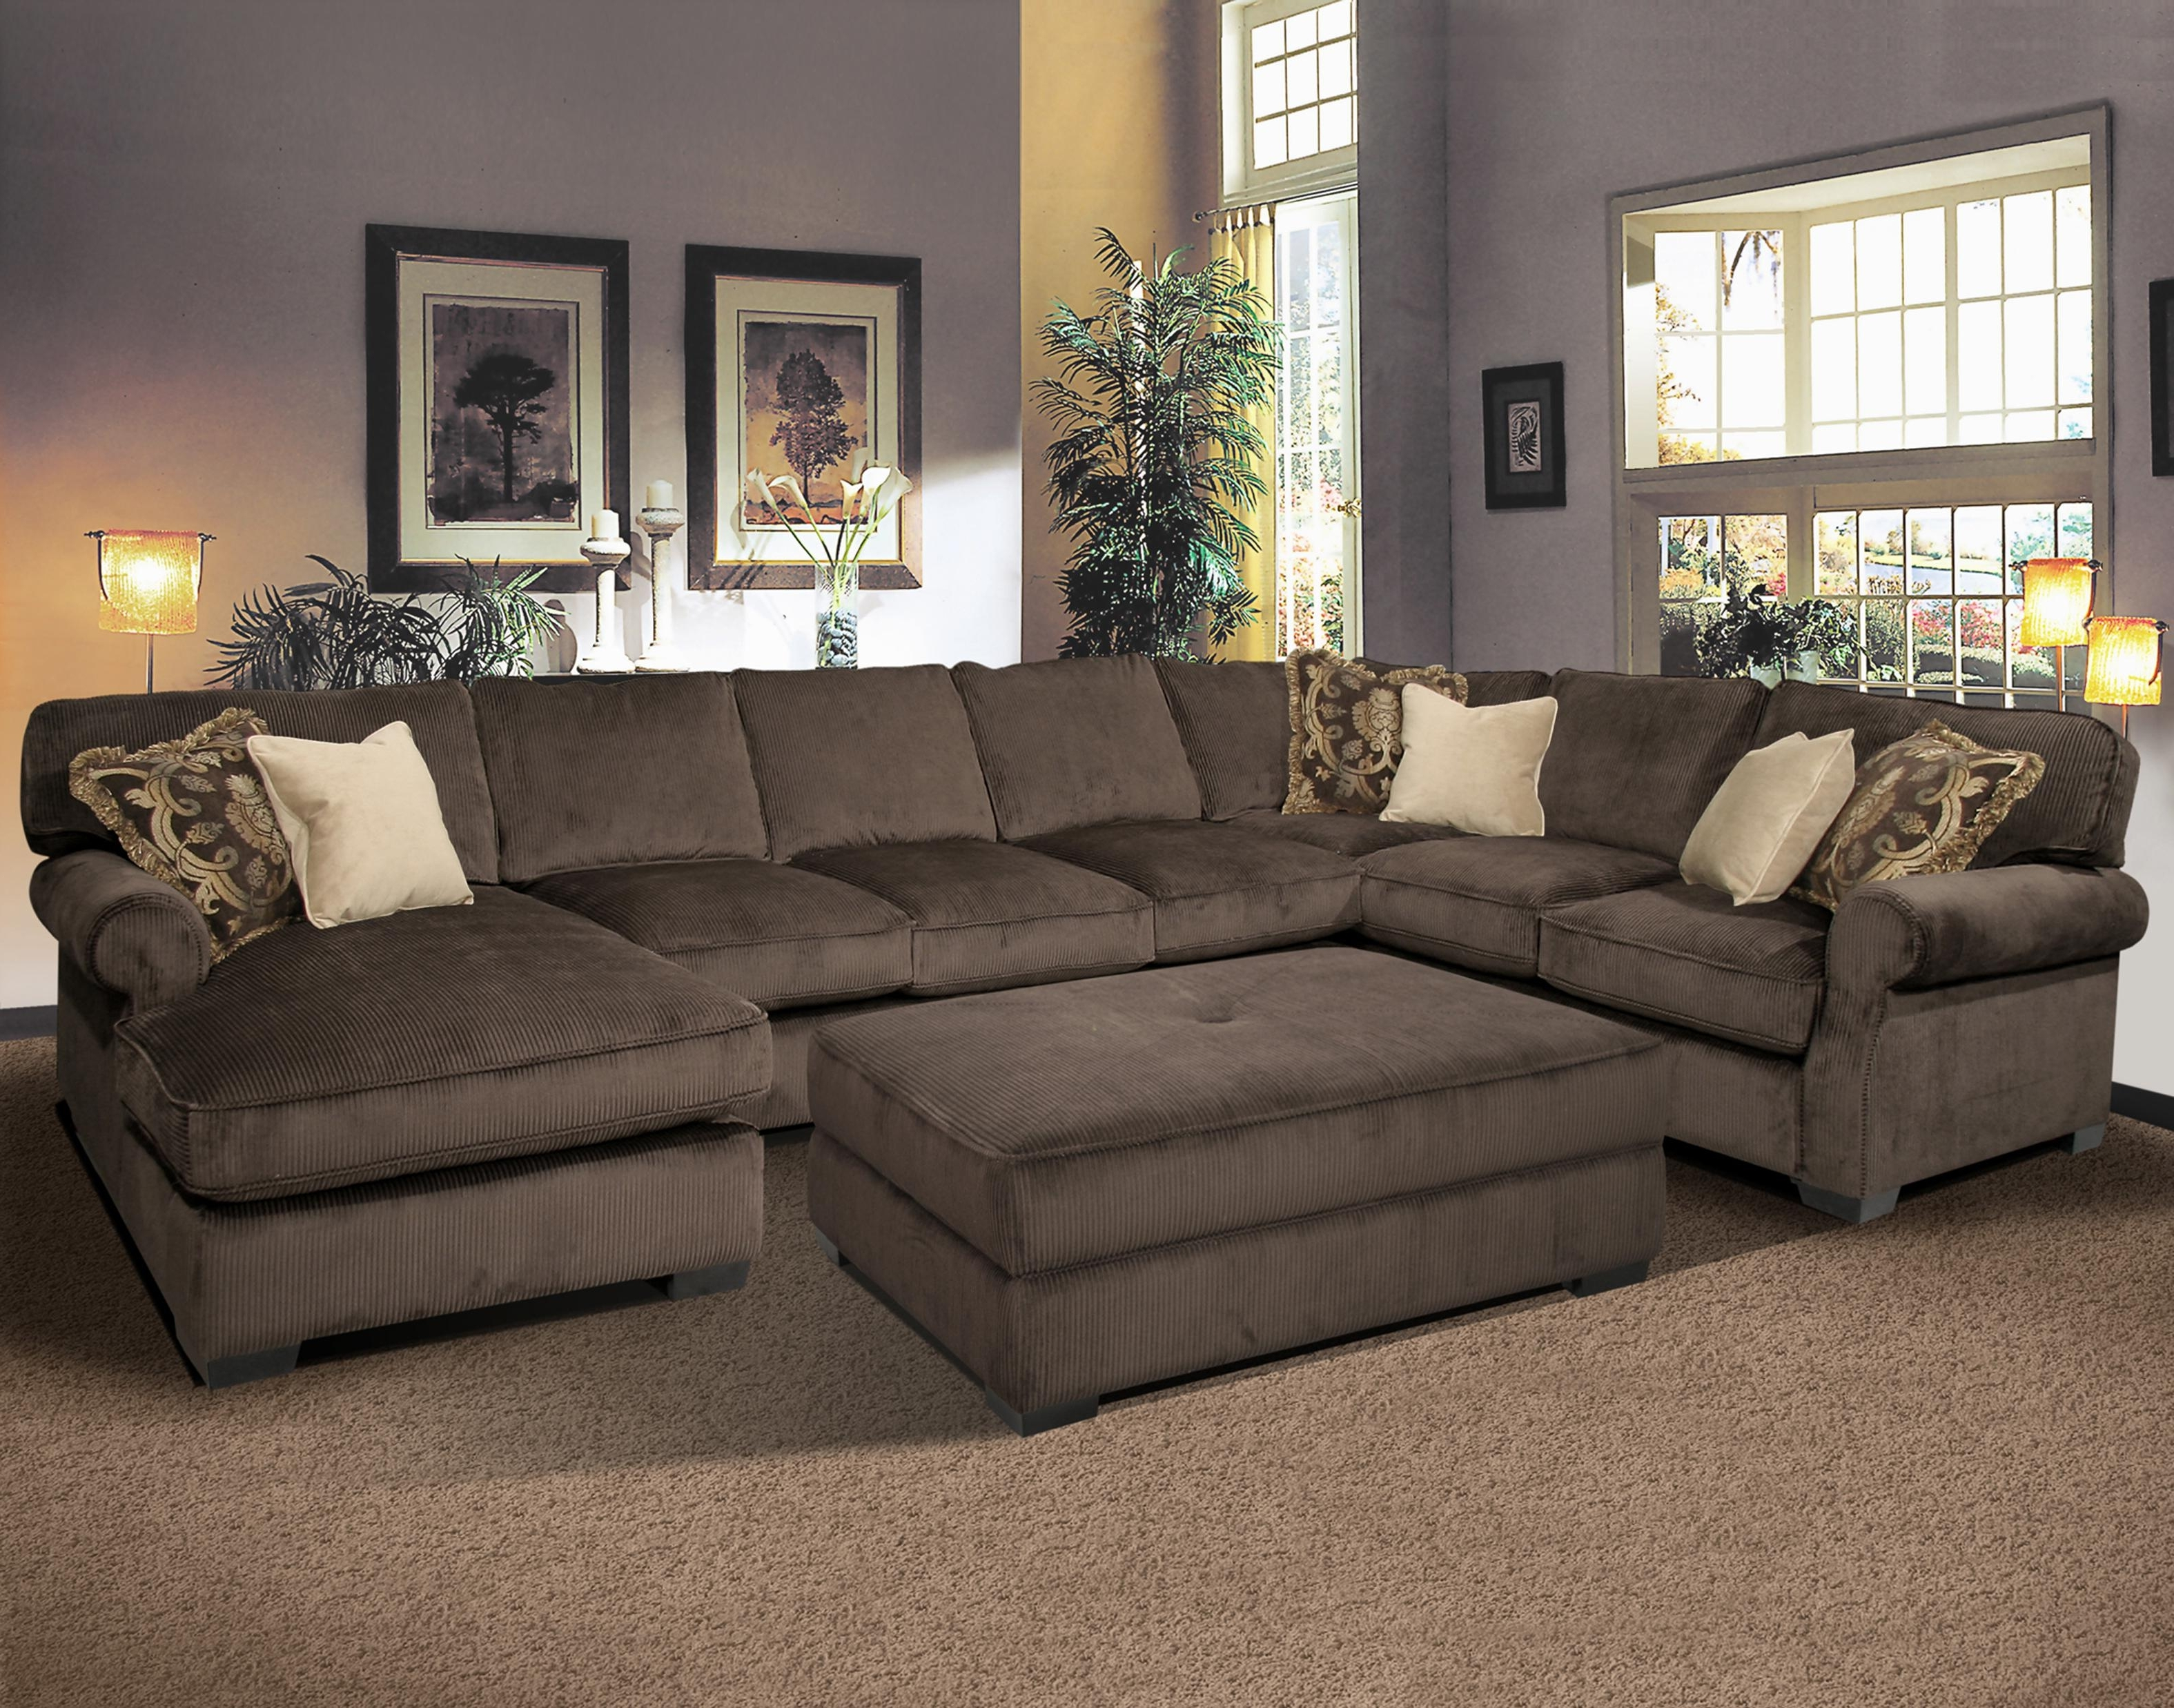 Trendy Attractive Sectional Sleeper Sofa With Chaise Fantastic Furniture Intended For Sectional Couches With Chaise (View 14 of 15)